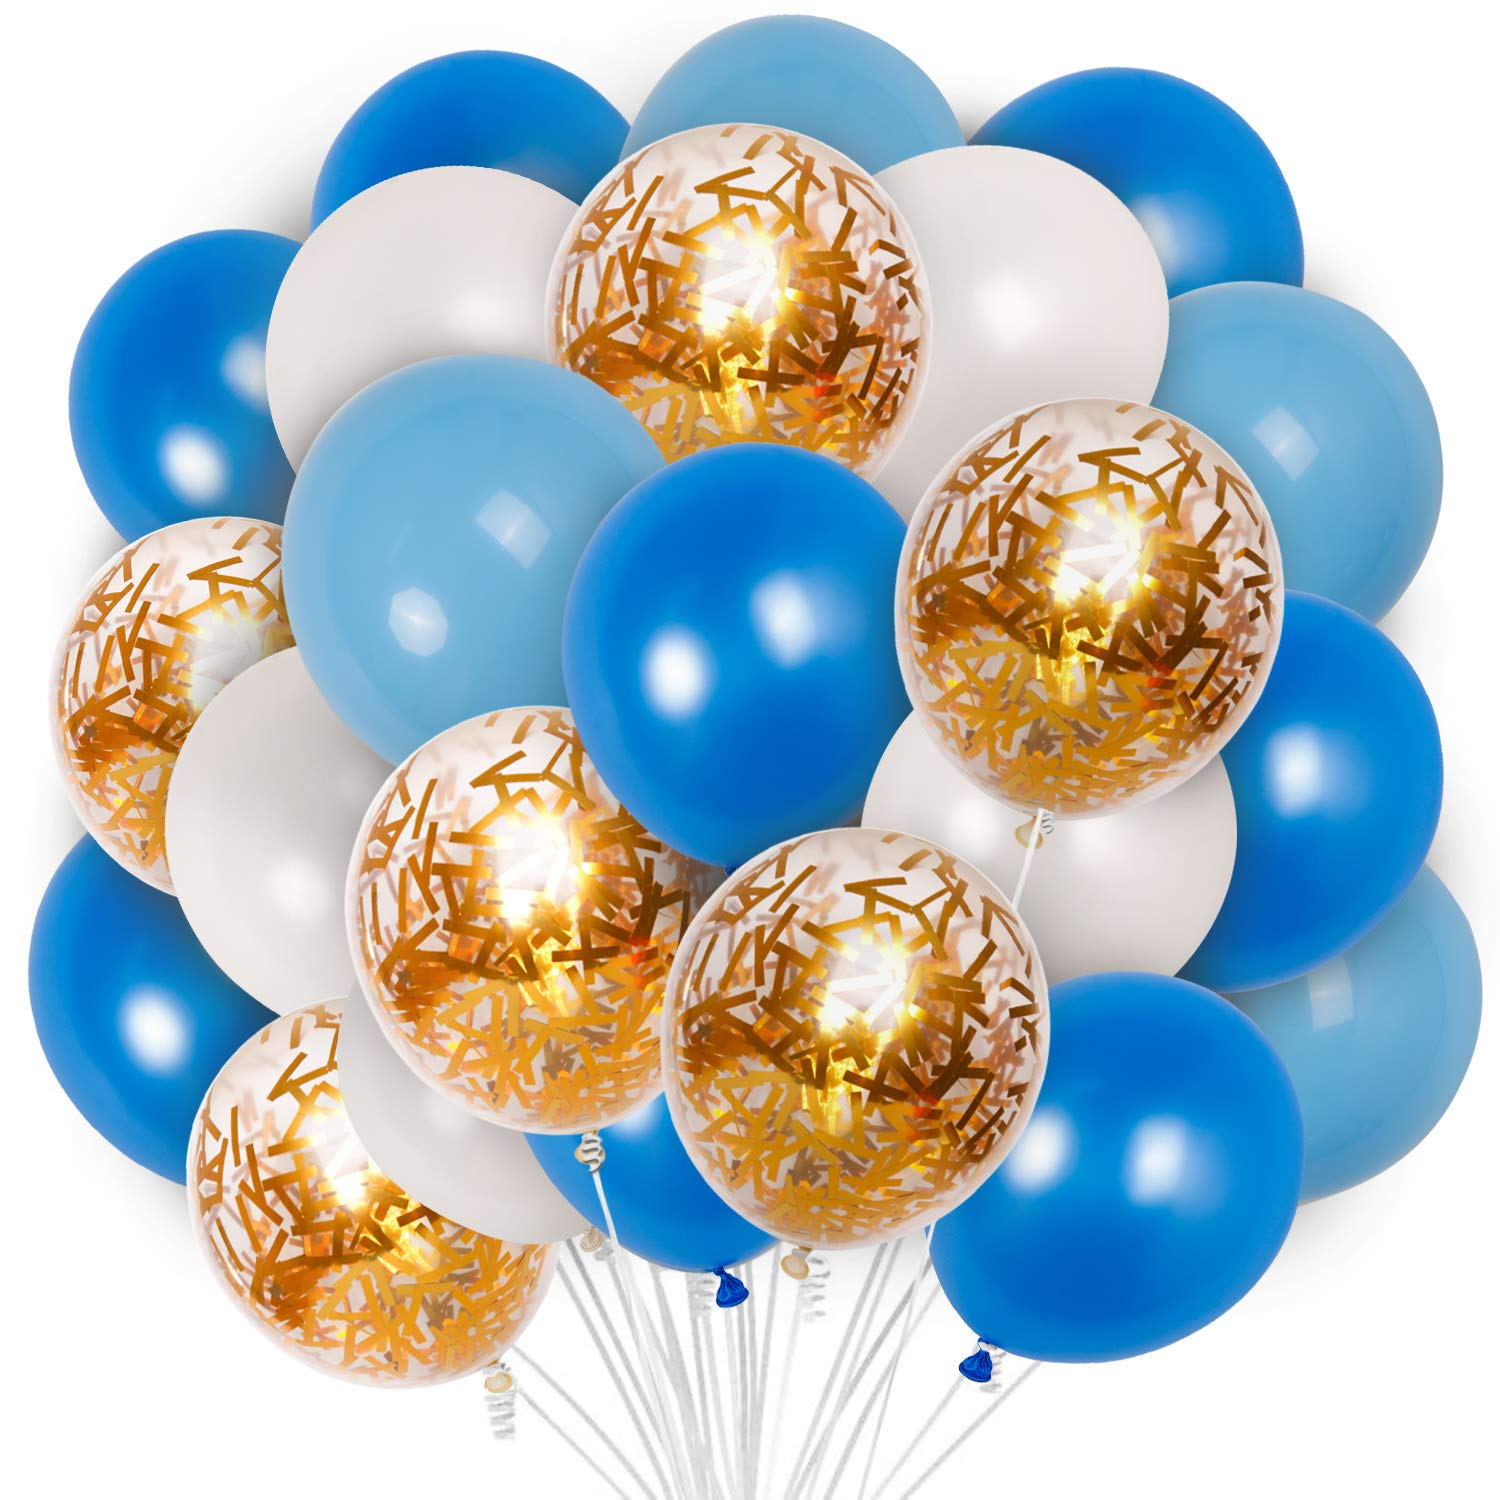 PartyWoo Blue and Gold Balloons, 12 Inch Royal Blue Balloons, Baby Blue Balloons, Gold Confetti Balloons, Blue and White Balloons, Blue White Gold Balloons for Blue and Gold Party Decorations